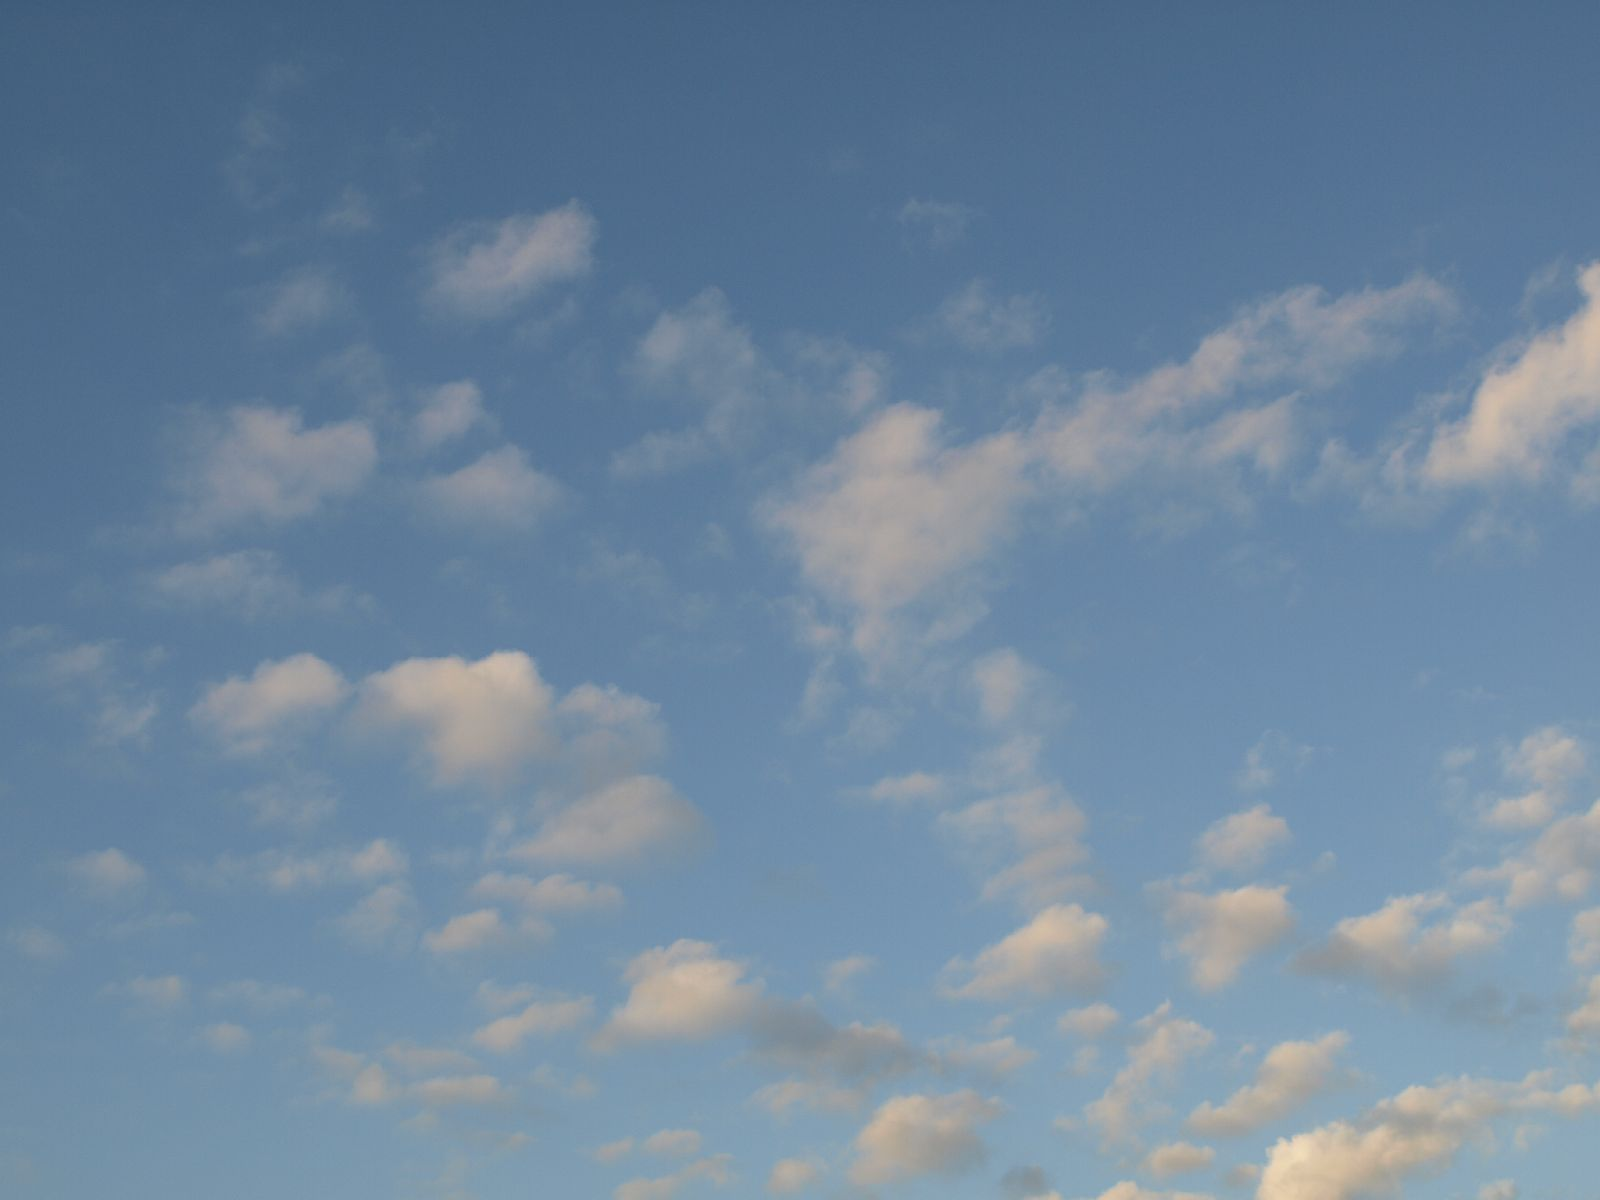 Sky_Clouds_Photo_Texture_A_P8154255